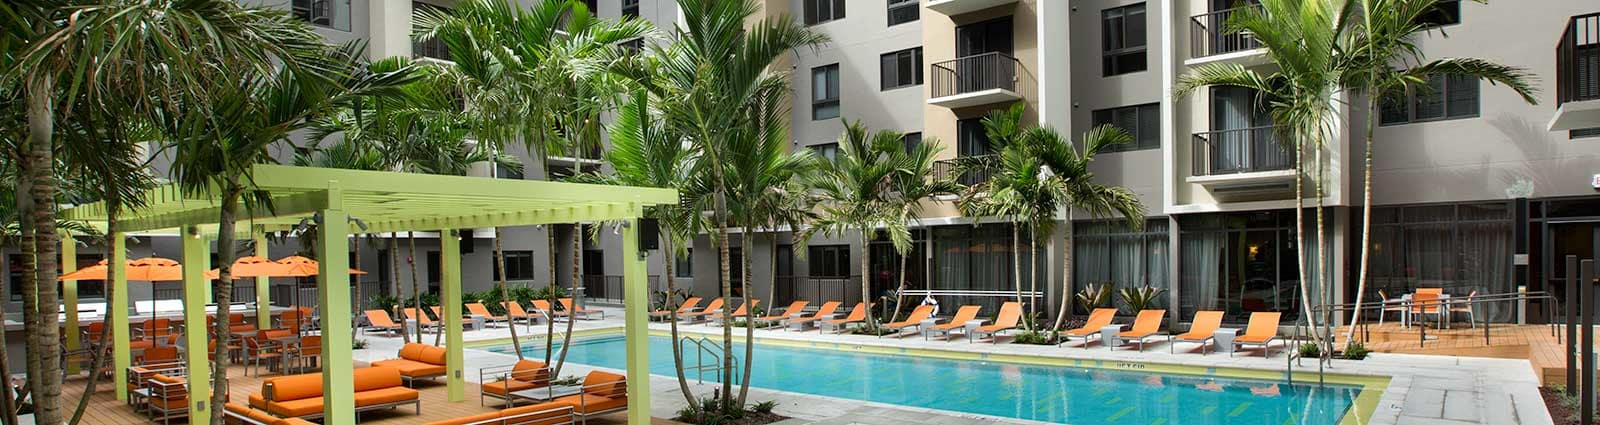 Contact Berkshire Coral Gables for information about our apartments in Miami